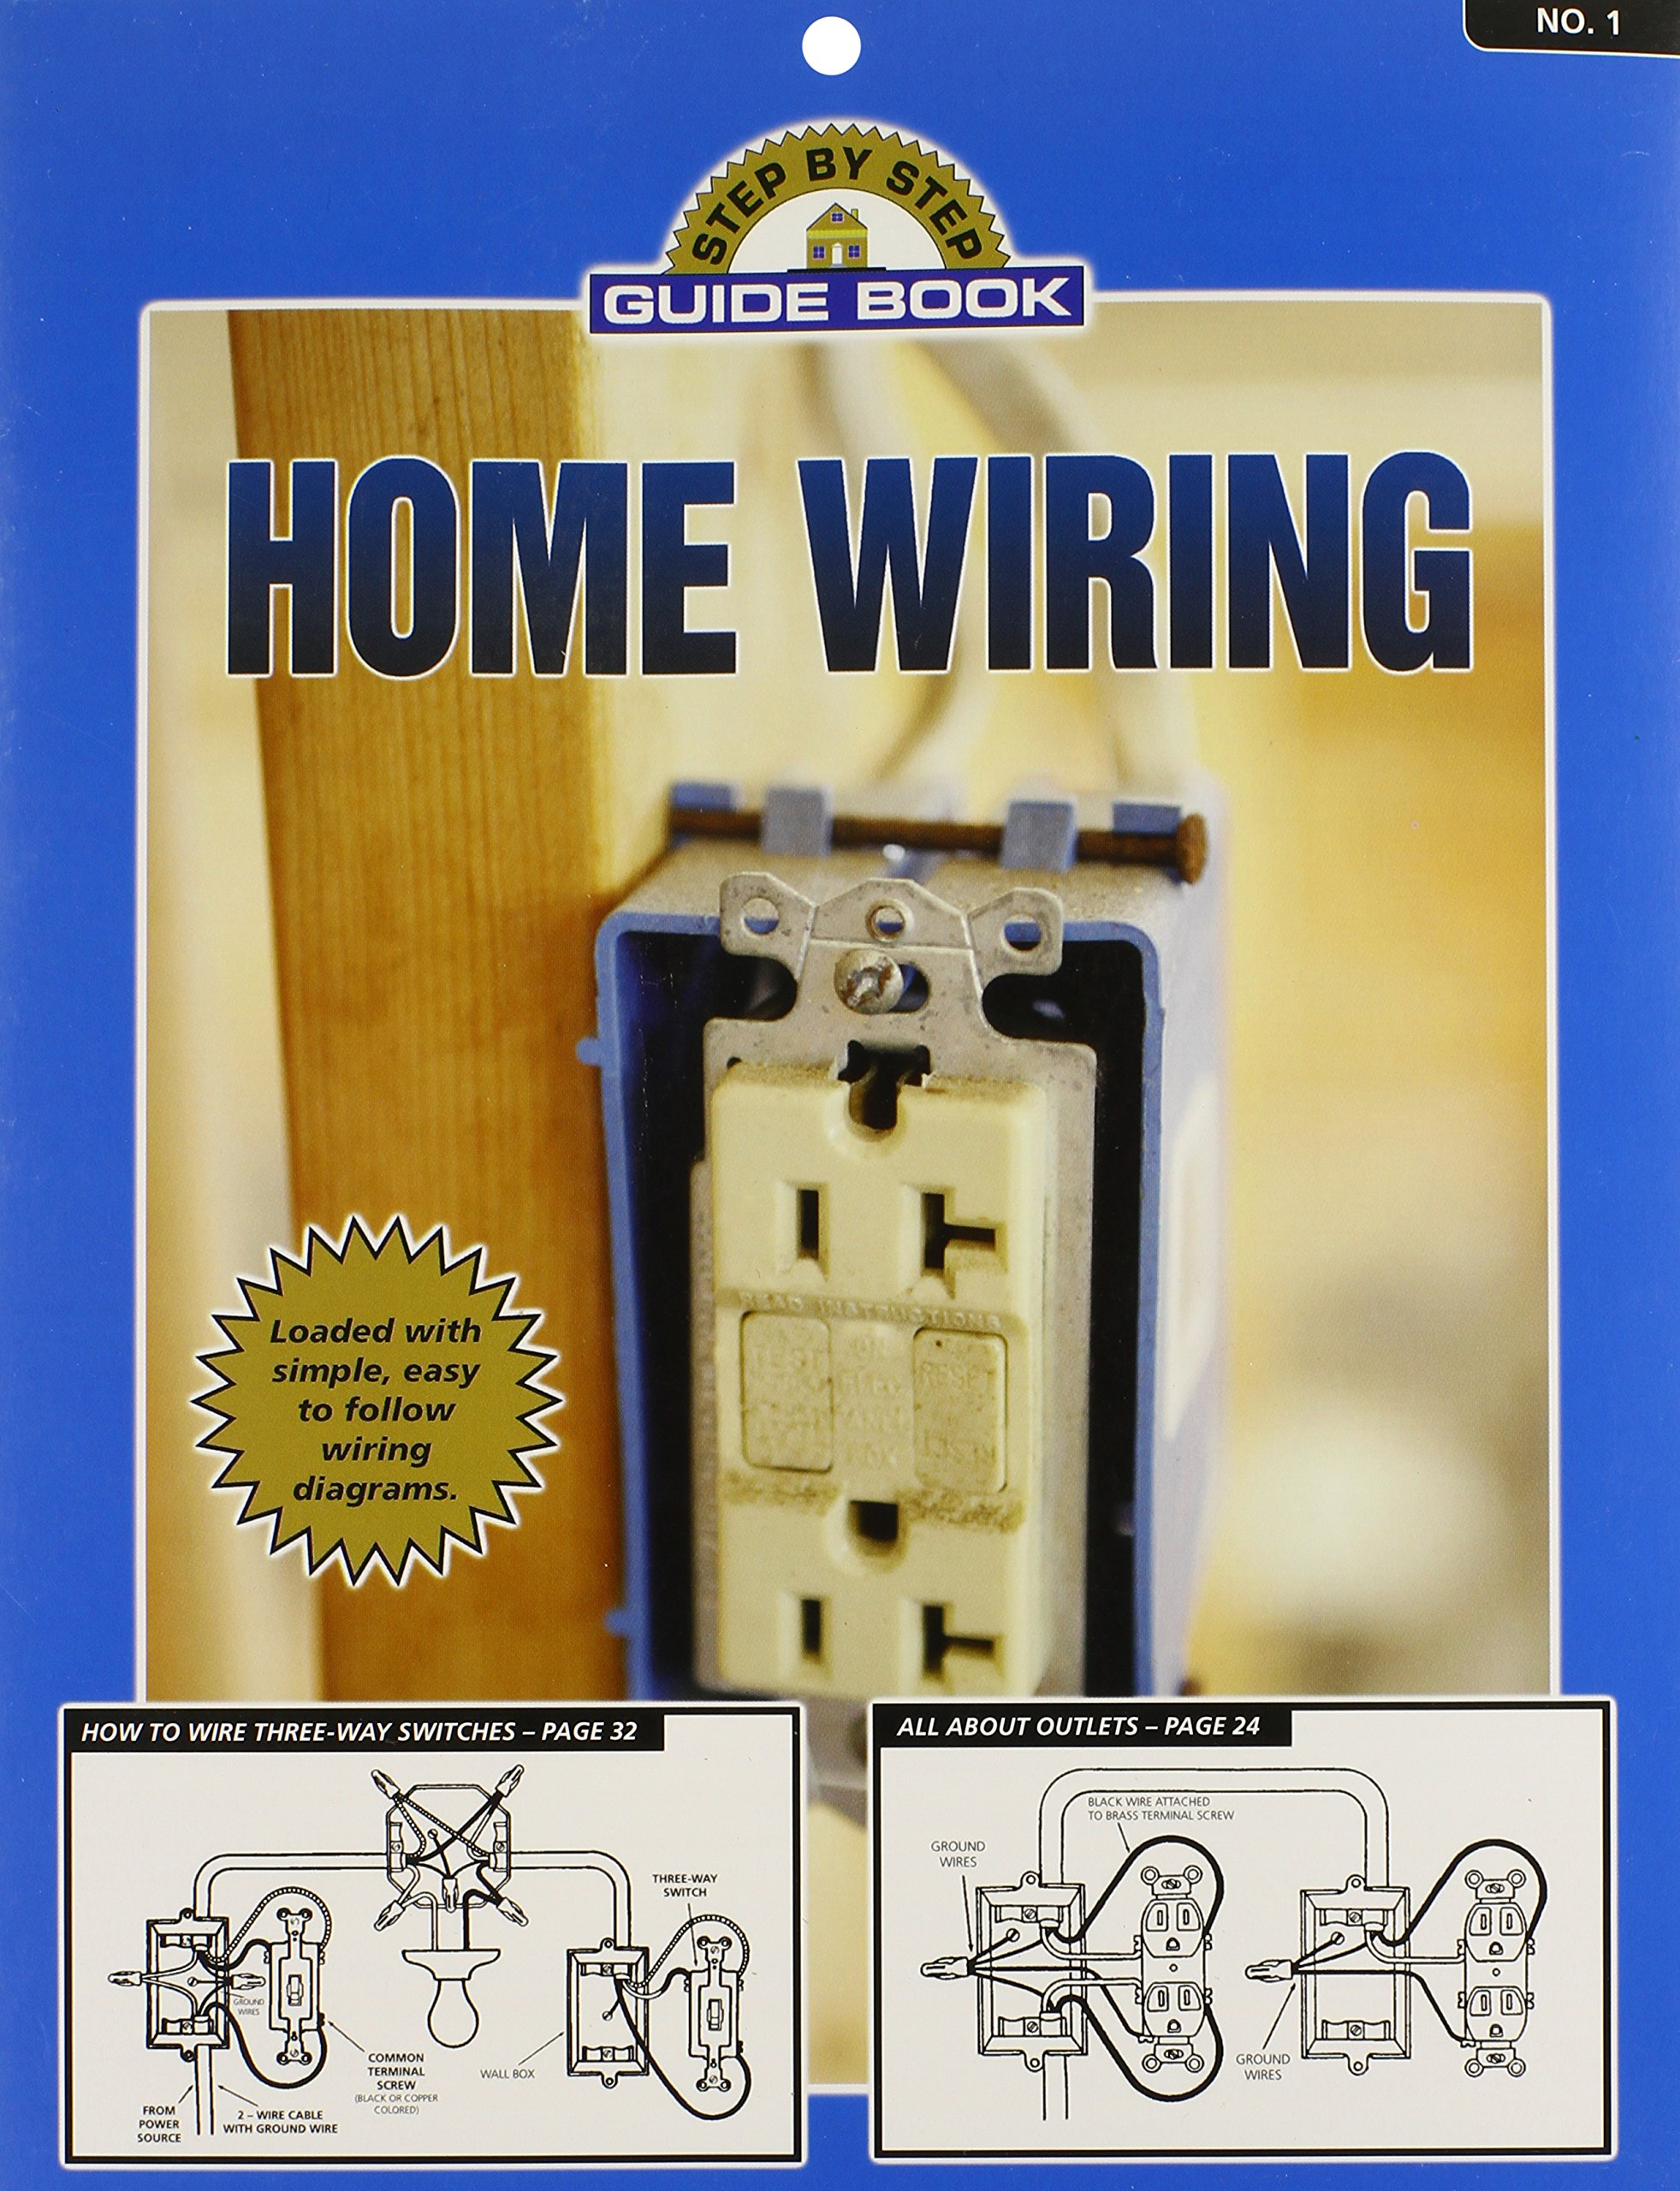 Wondrous Basic Wiring Home Book Wiring Library Wiring Database Mangnorabwedabyuccorg